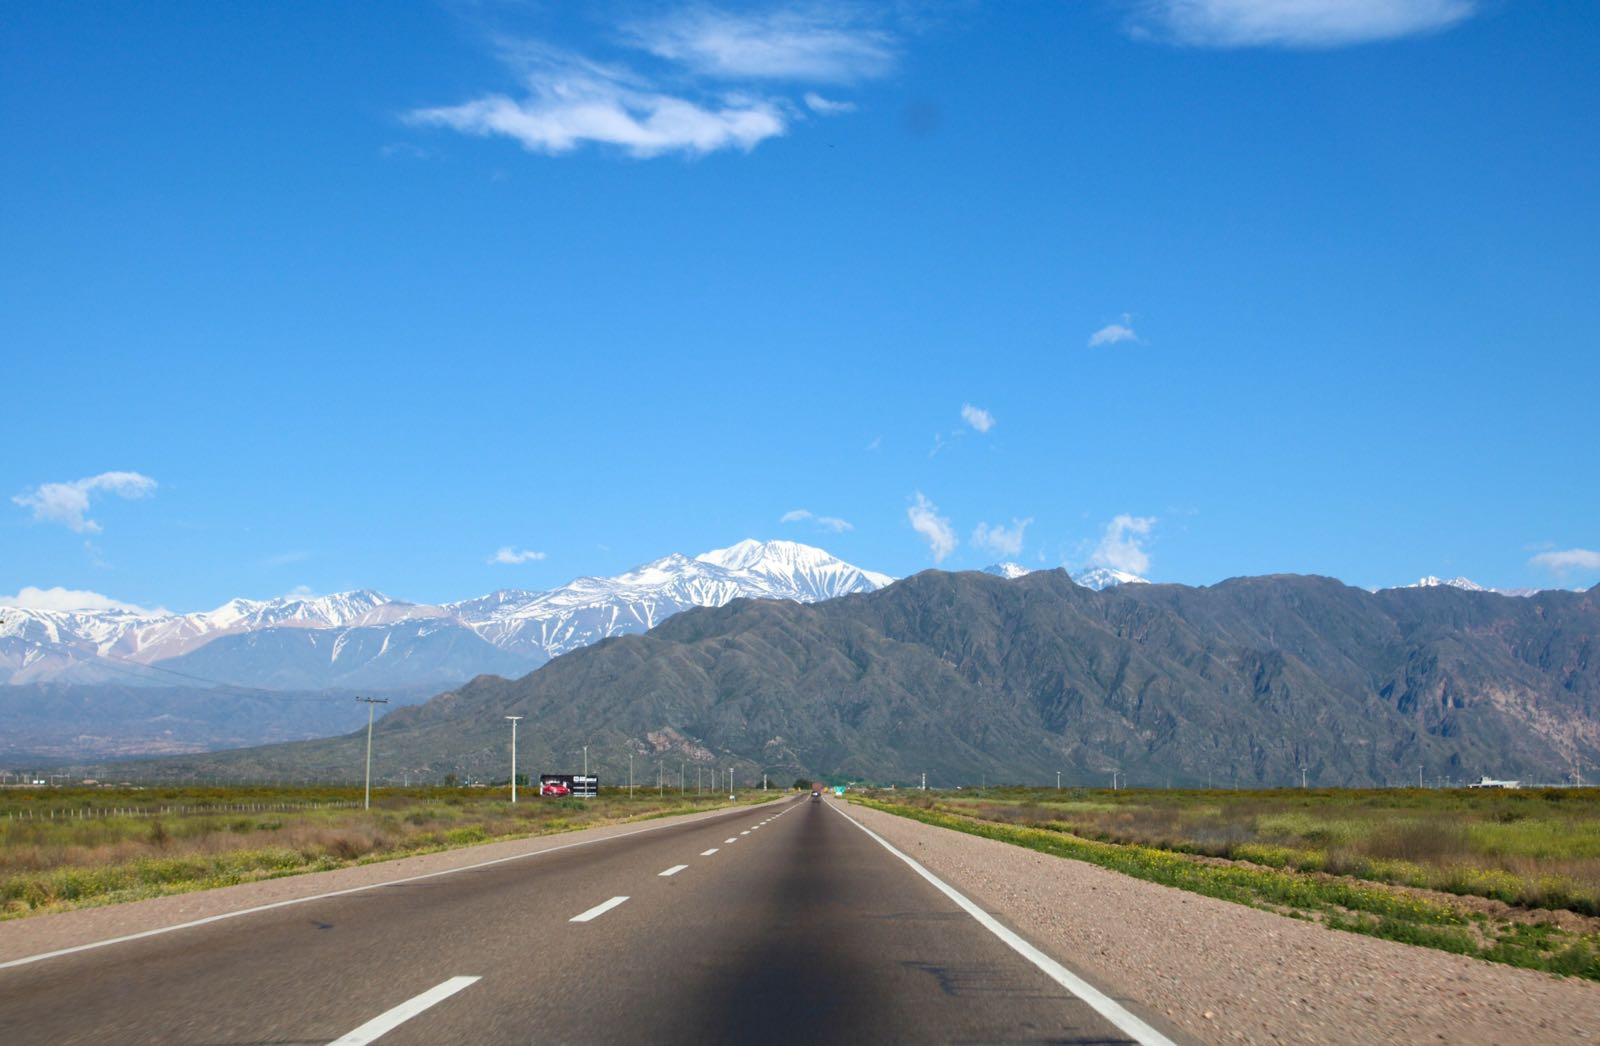 Driving through the Andes